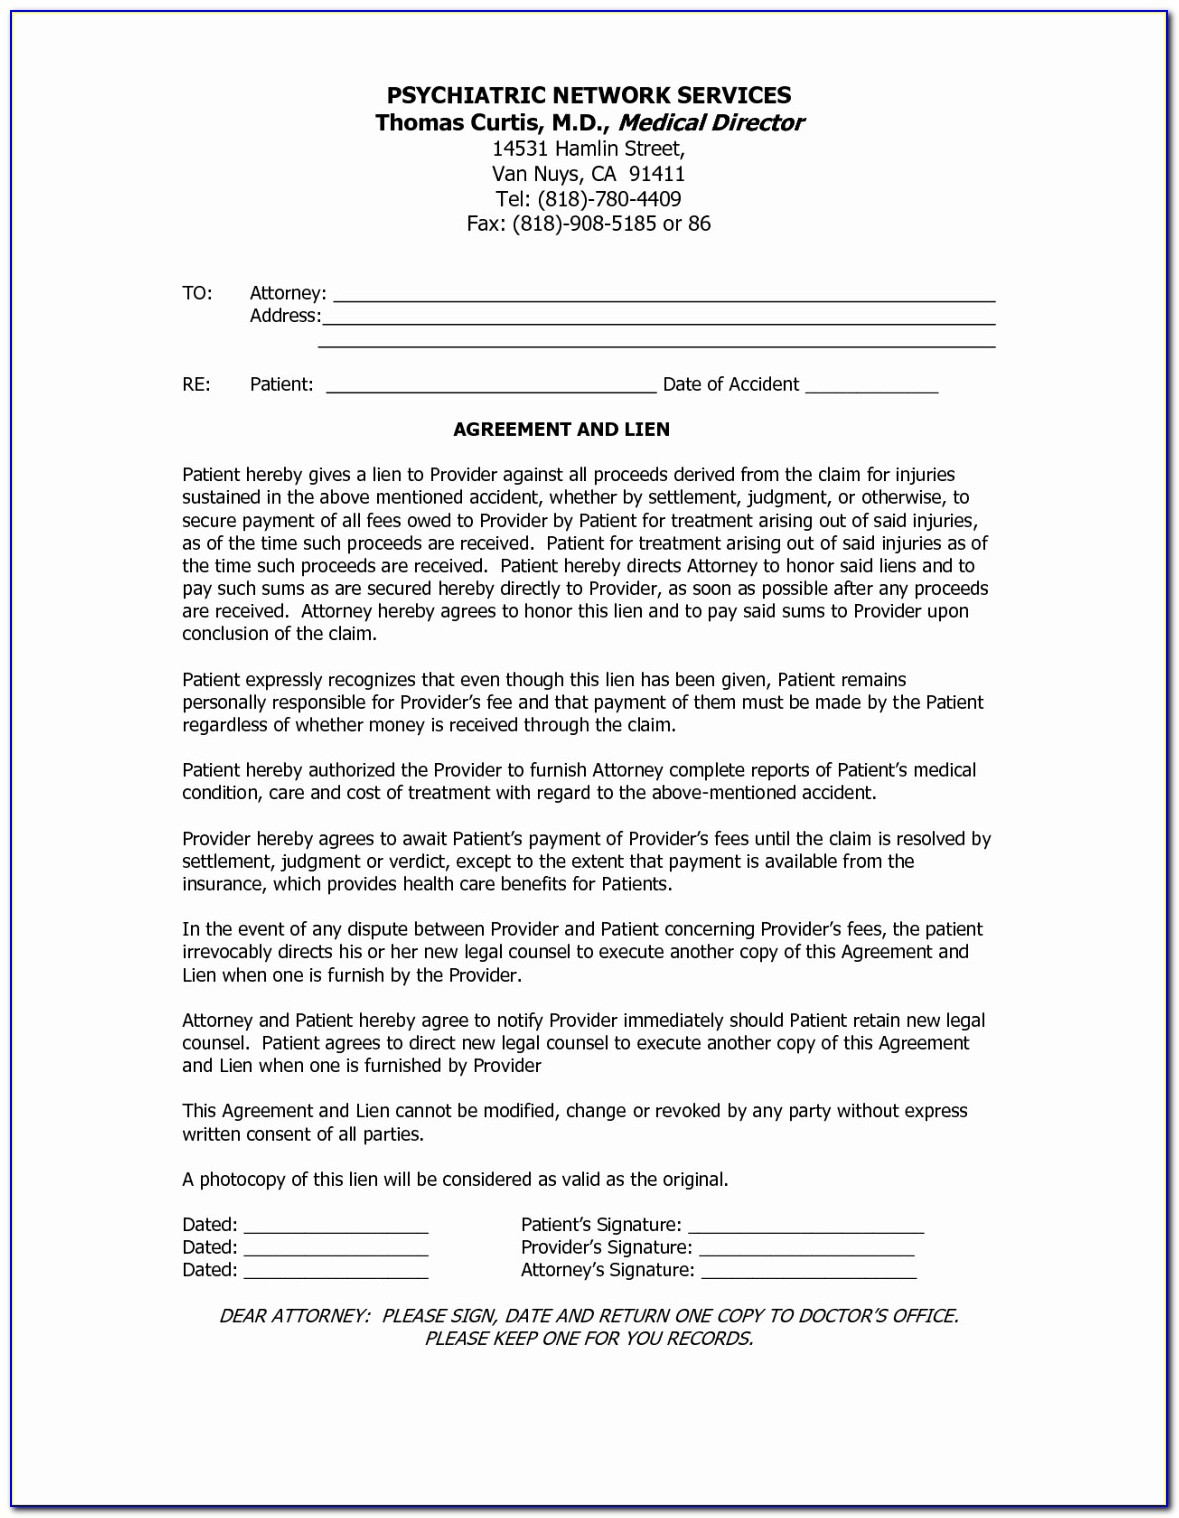 50 Unique Car Accident Settlement Agreement